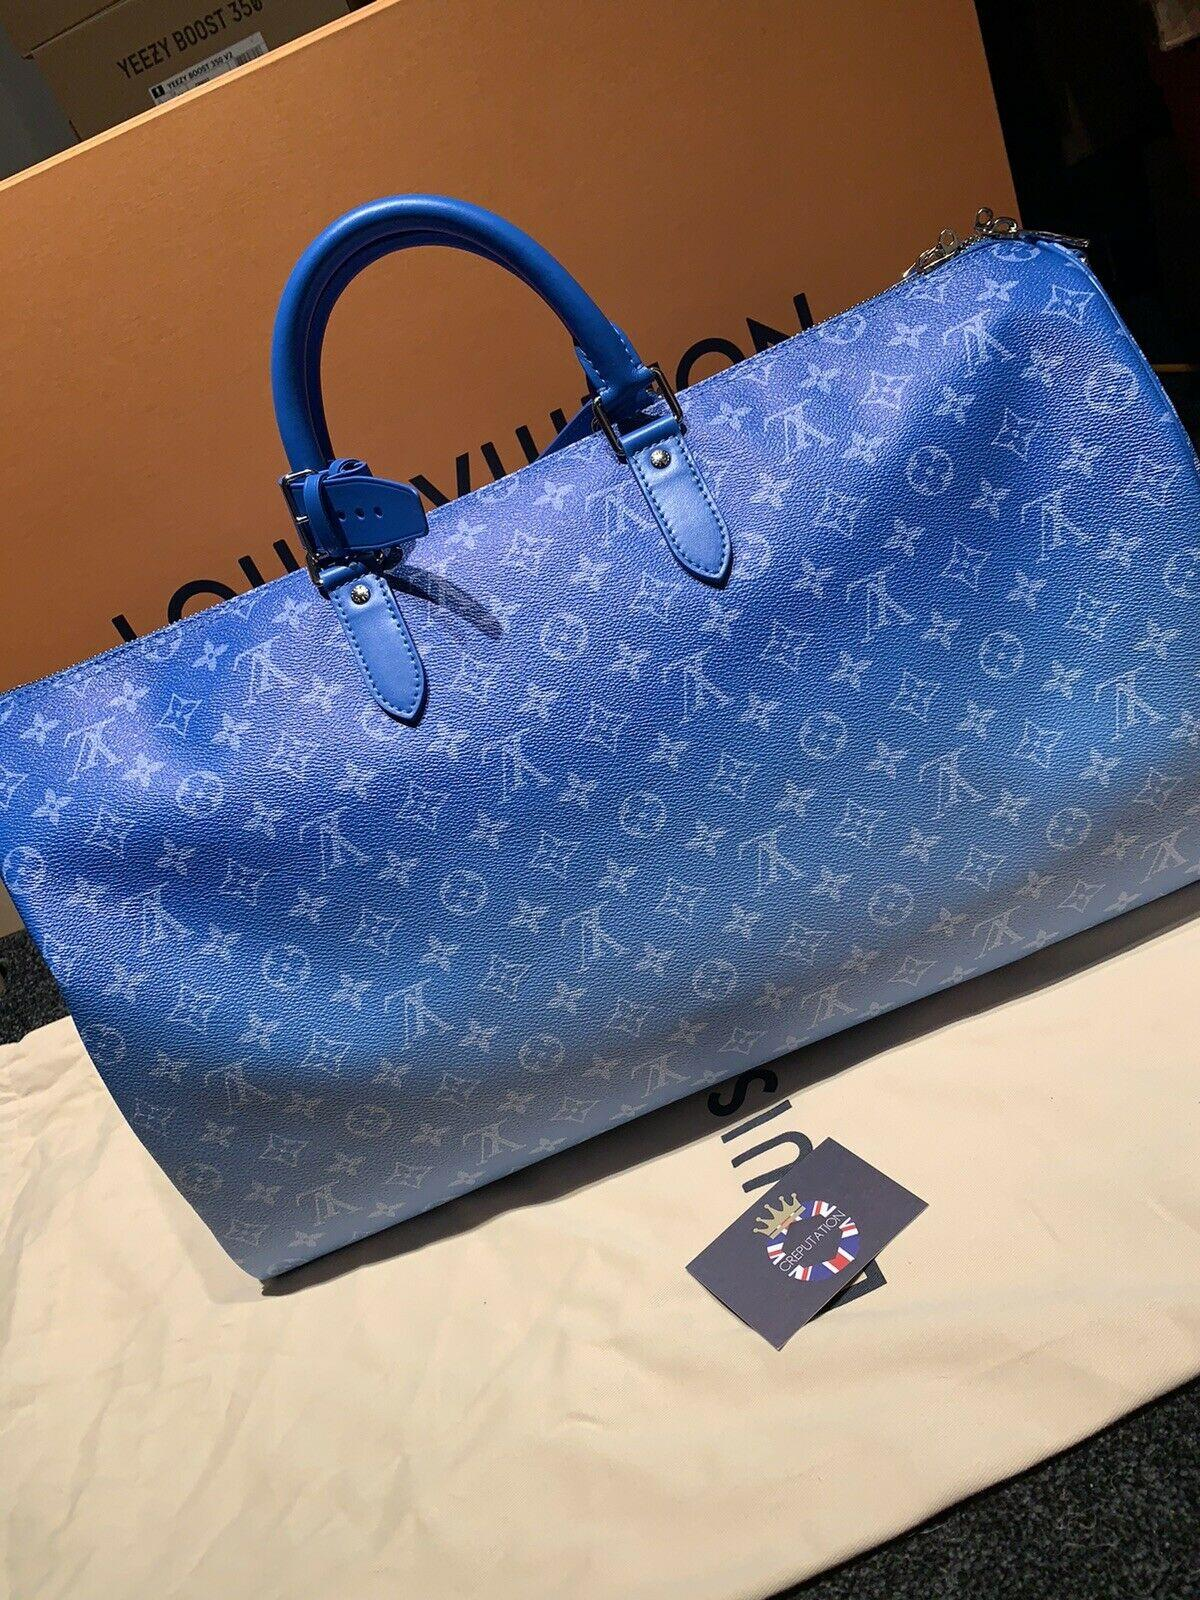 LOUIS VUITTON KEEPALL BANDOULIÈRE 50 Monogram CLOUDS Virgil Abloh M45428 handbag